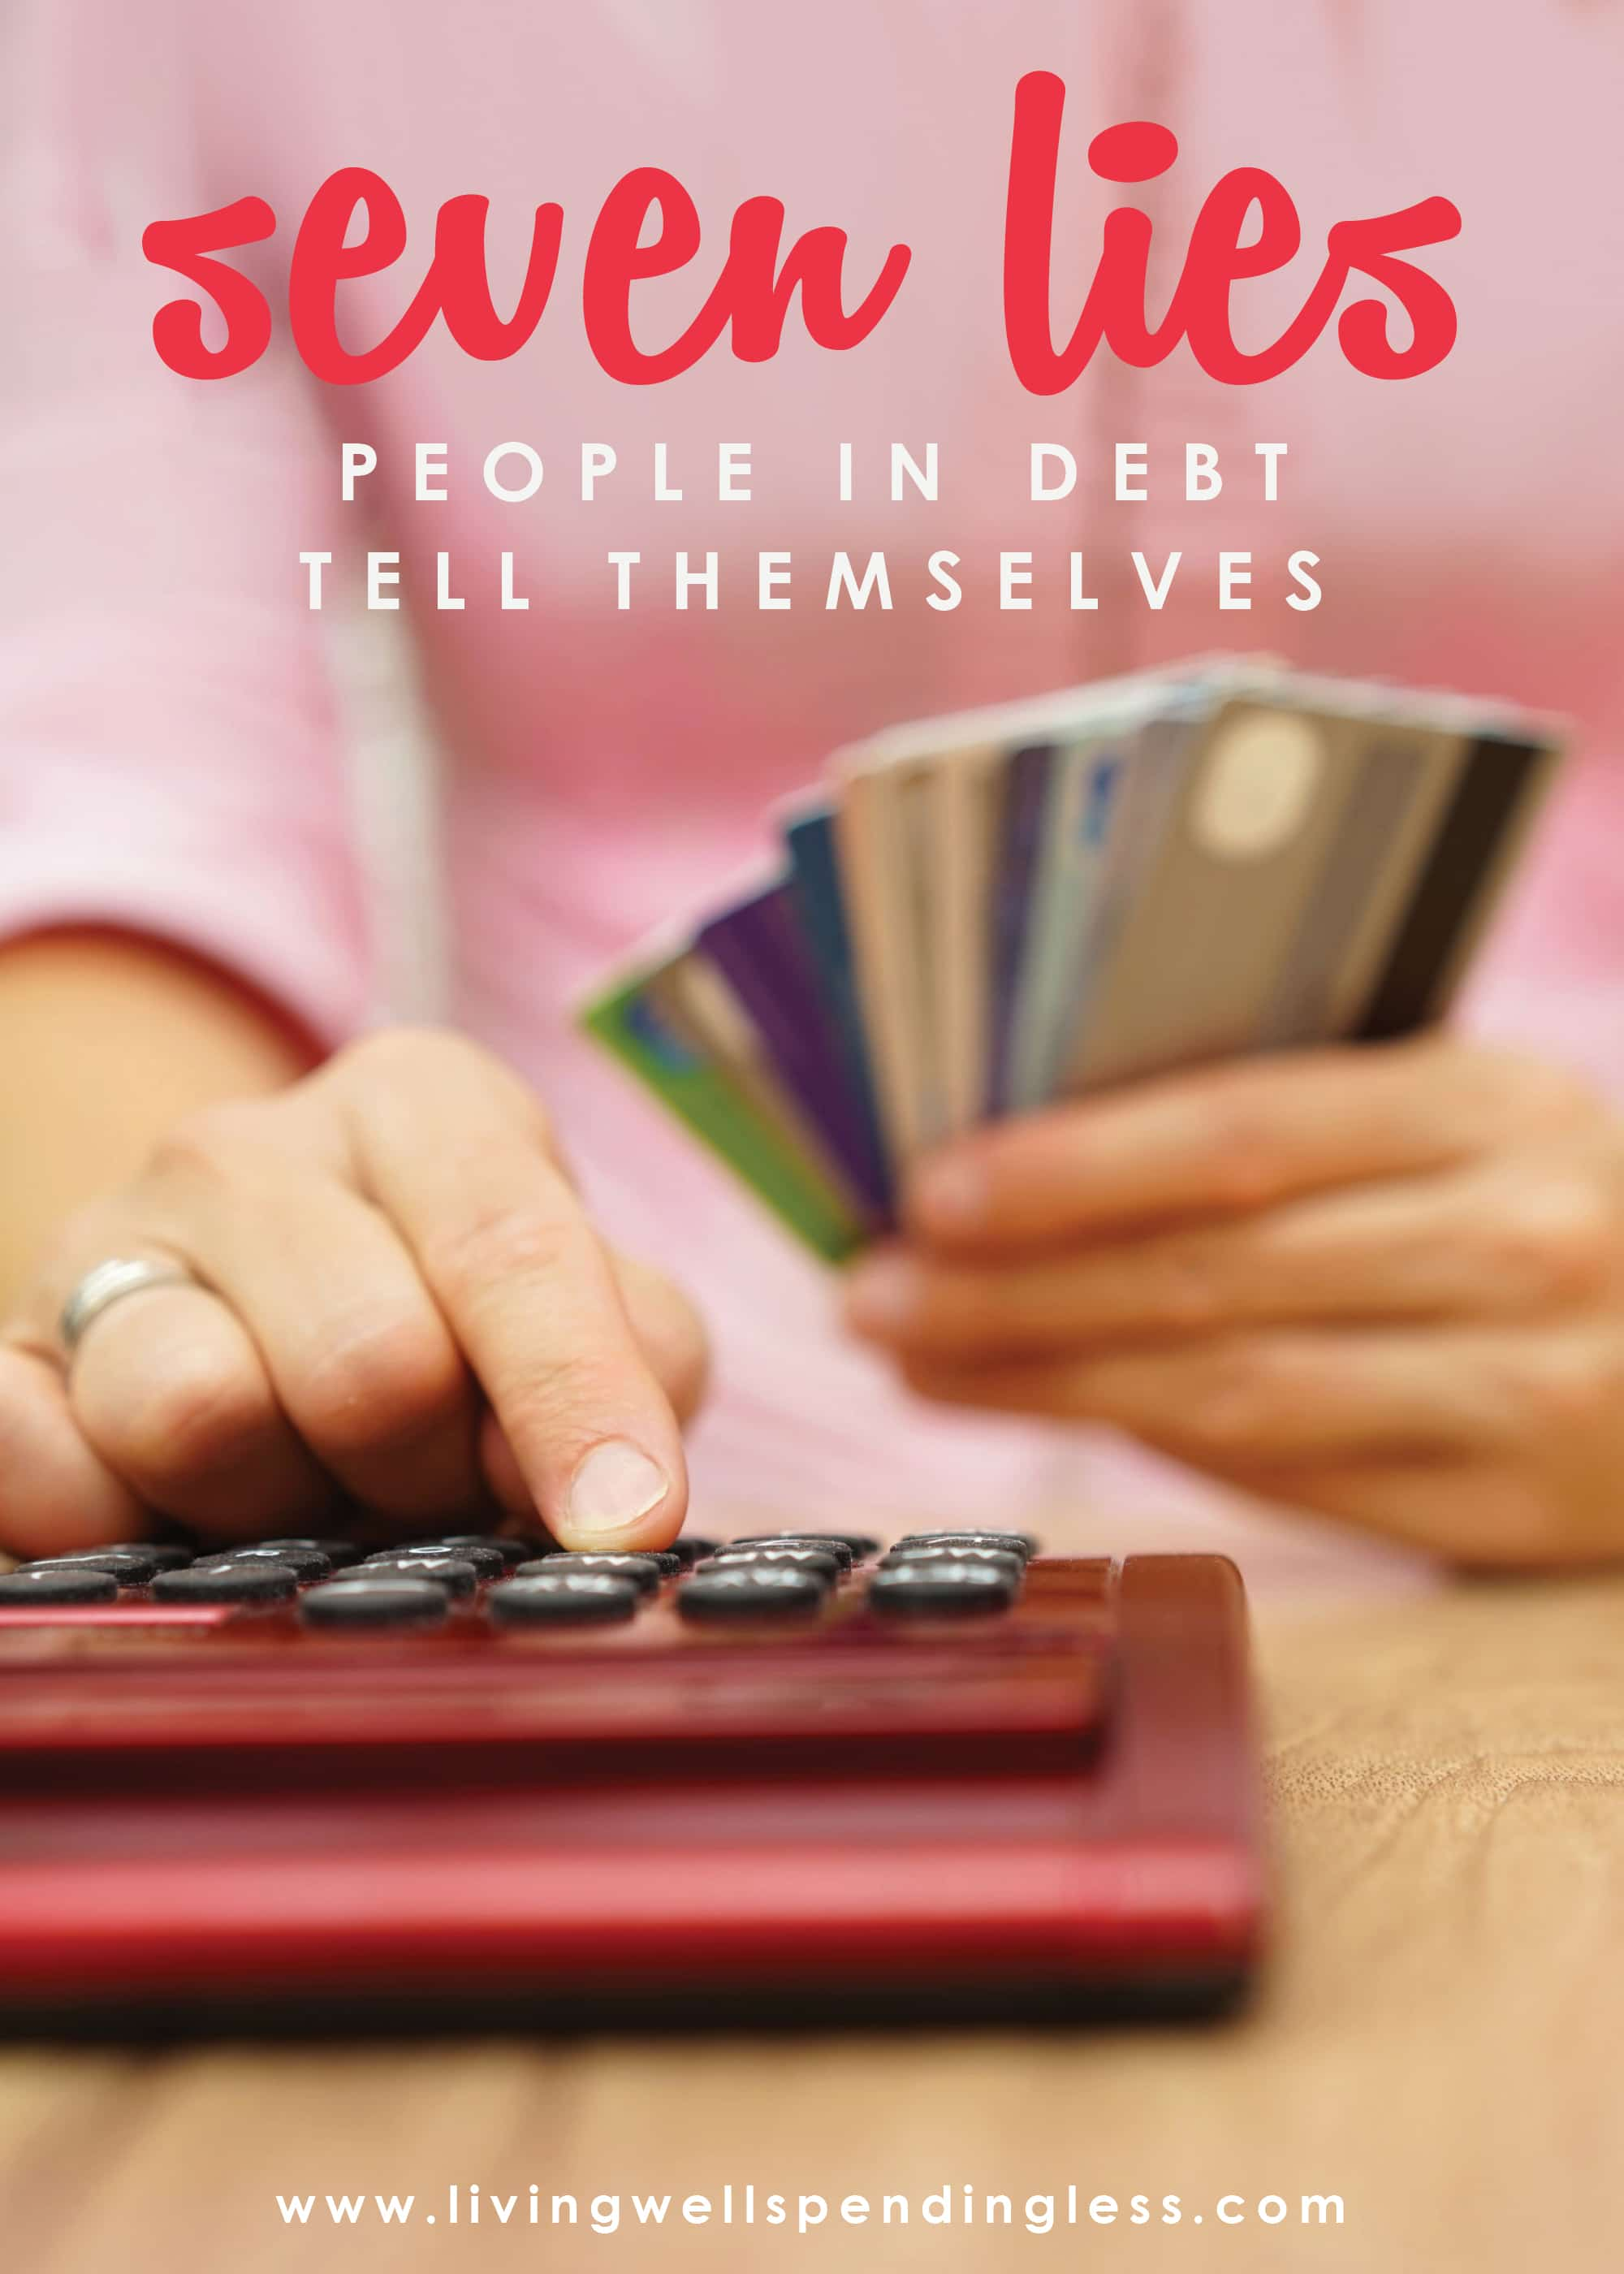 Got debt? Despite what the credit card companies would have you believe, debt does not have to be a way of life. If any of these seven lies sound familiar, it might be time to start rethinking the way you look at your finances.